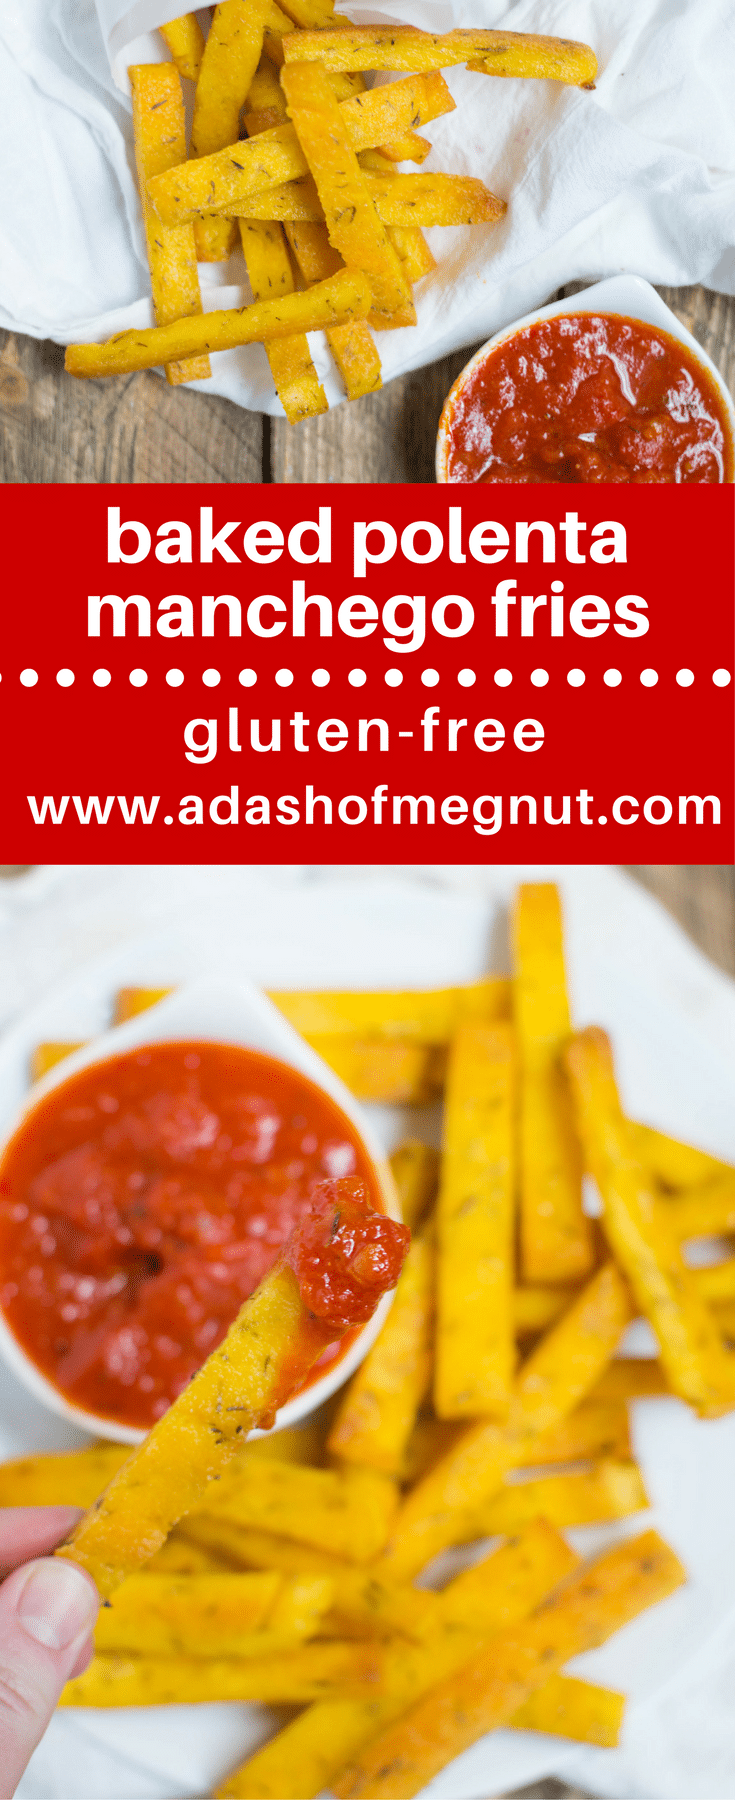 These baked polenta manchego fries are a great gluten-free appetizer or side for any meal! Perfectly crispy and delicious when served with marinara sauce! #glutenfree